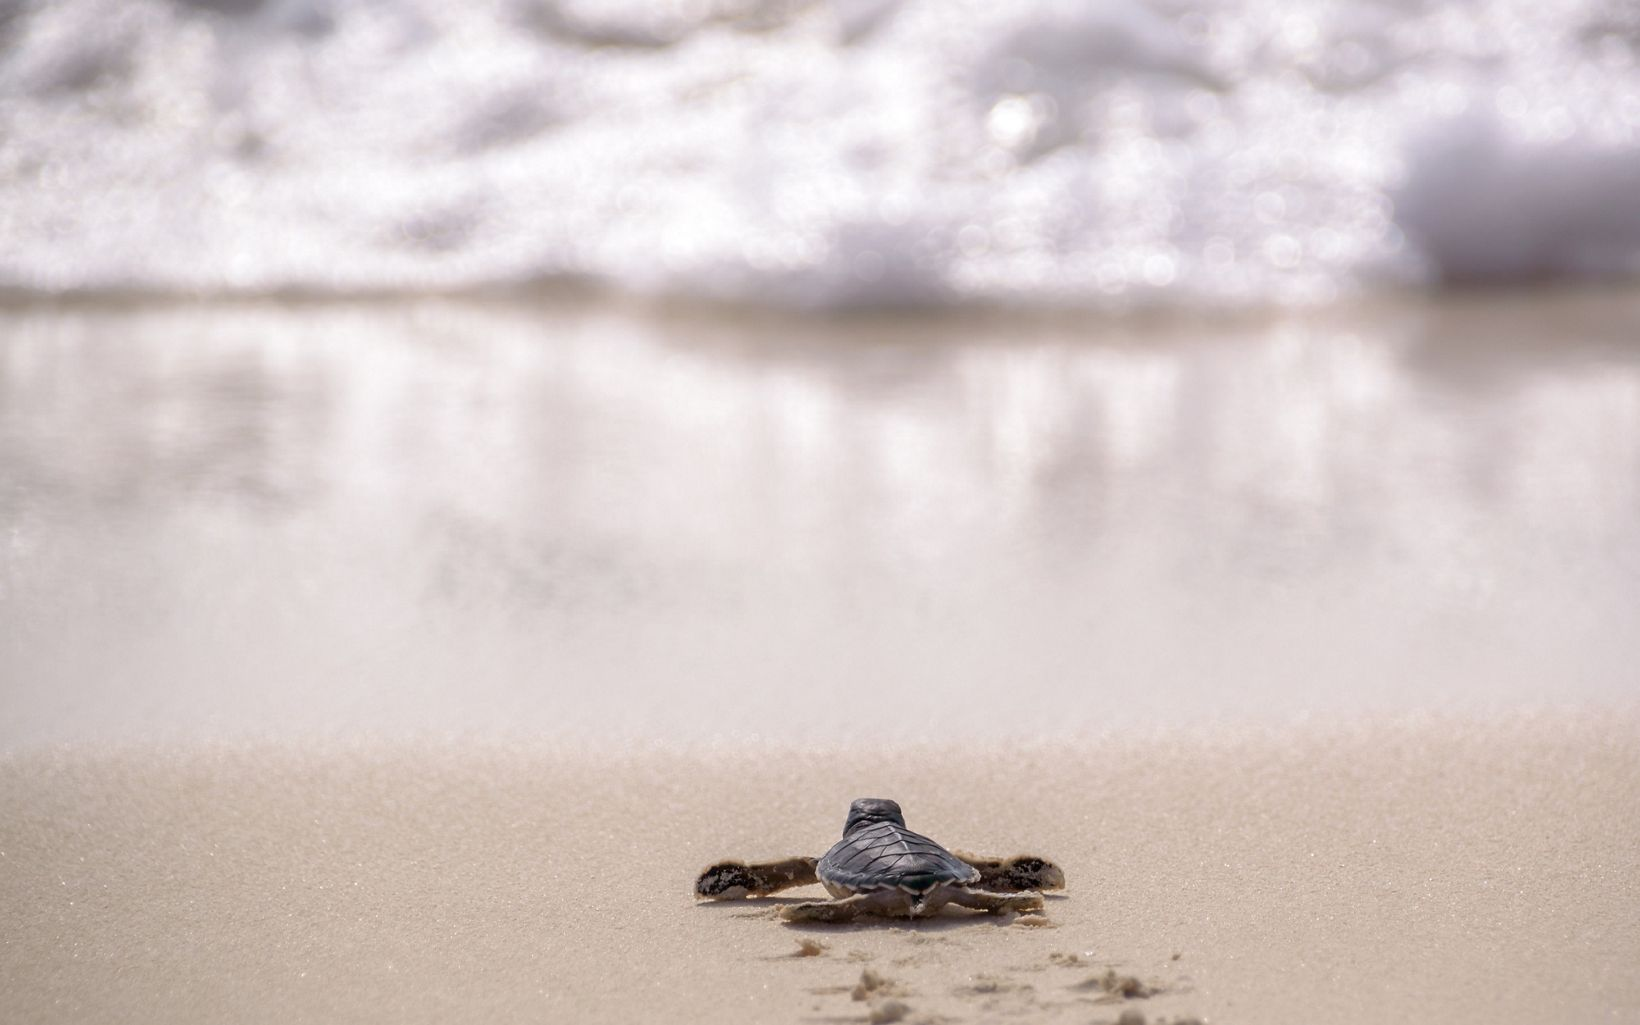 A baby turtle waddles on the sand on its way toward the ocean.